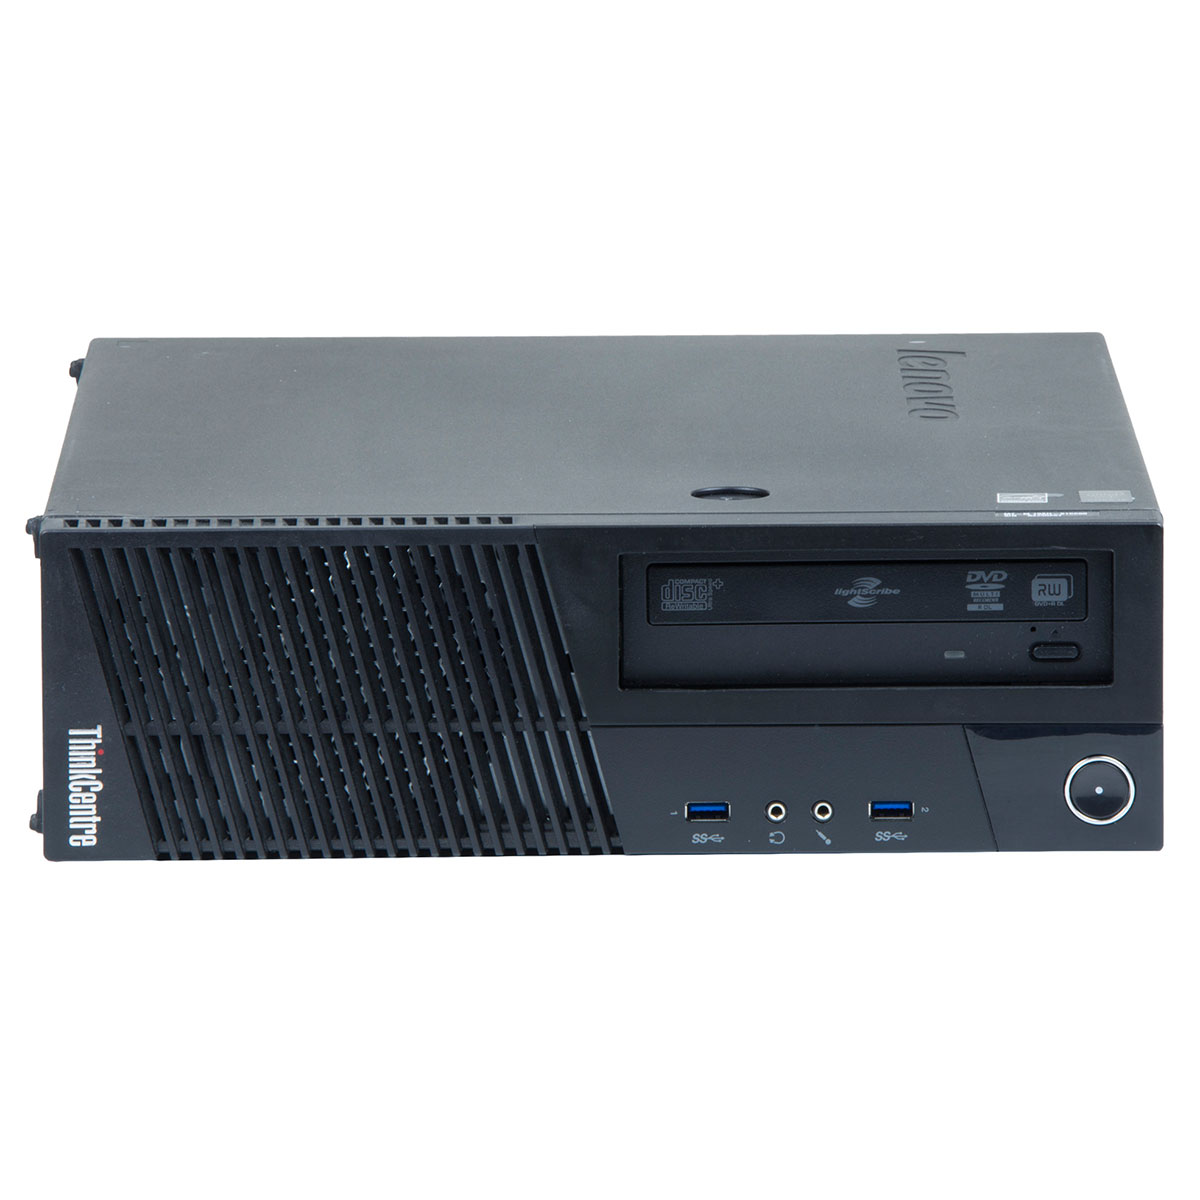 Lenovo ThinkCentre M83 Intel Core i7-4790K 4.00GHz  8GB DDR3  256GB SSD  SFF  Windows 10 Pro MAR  calculator refurbished